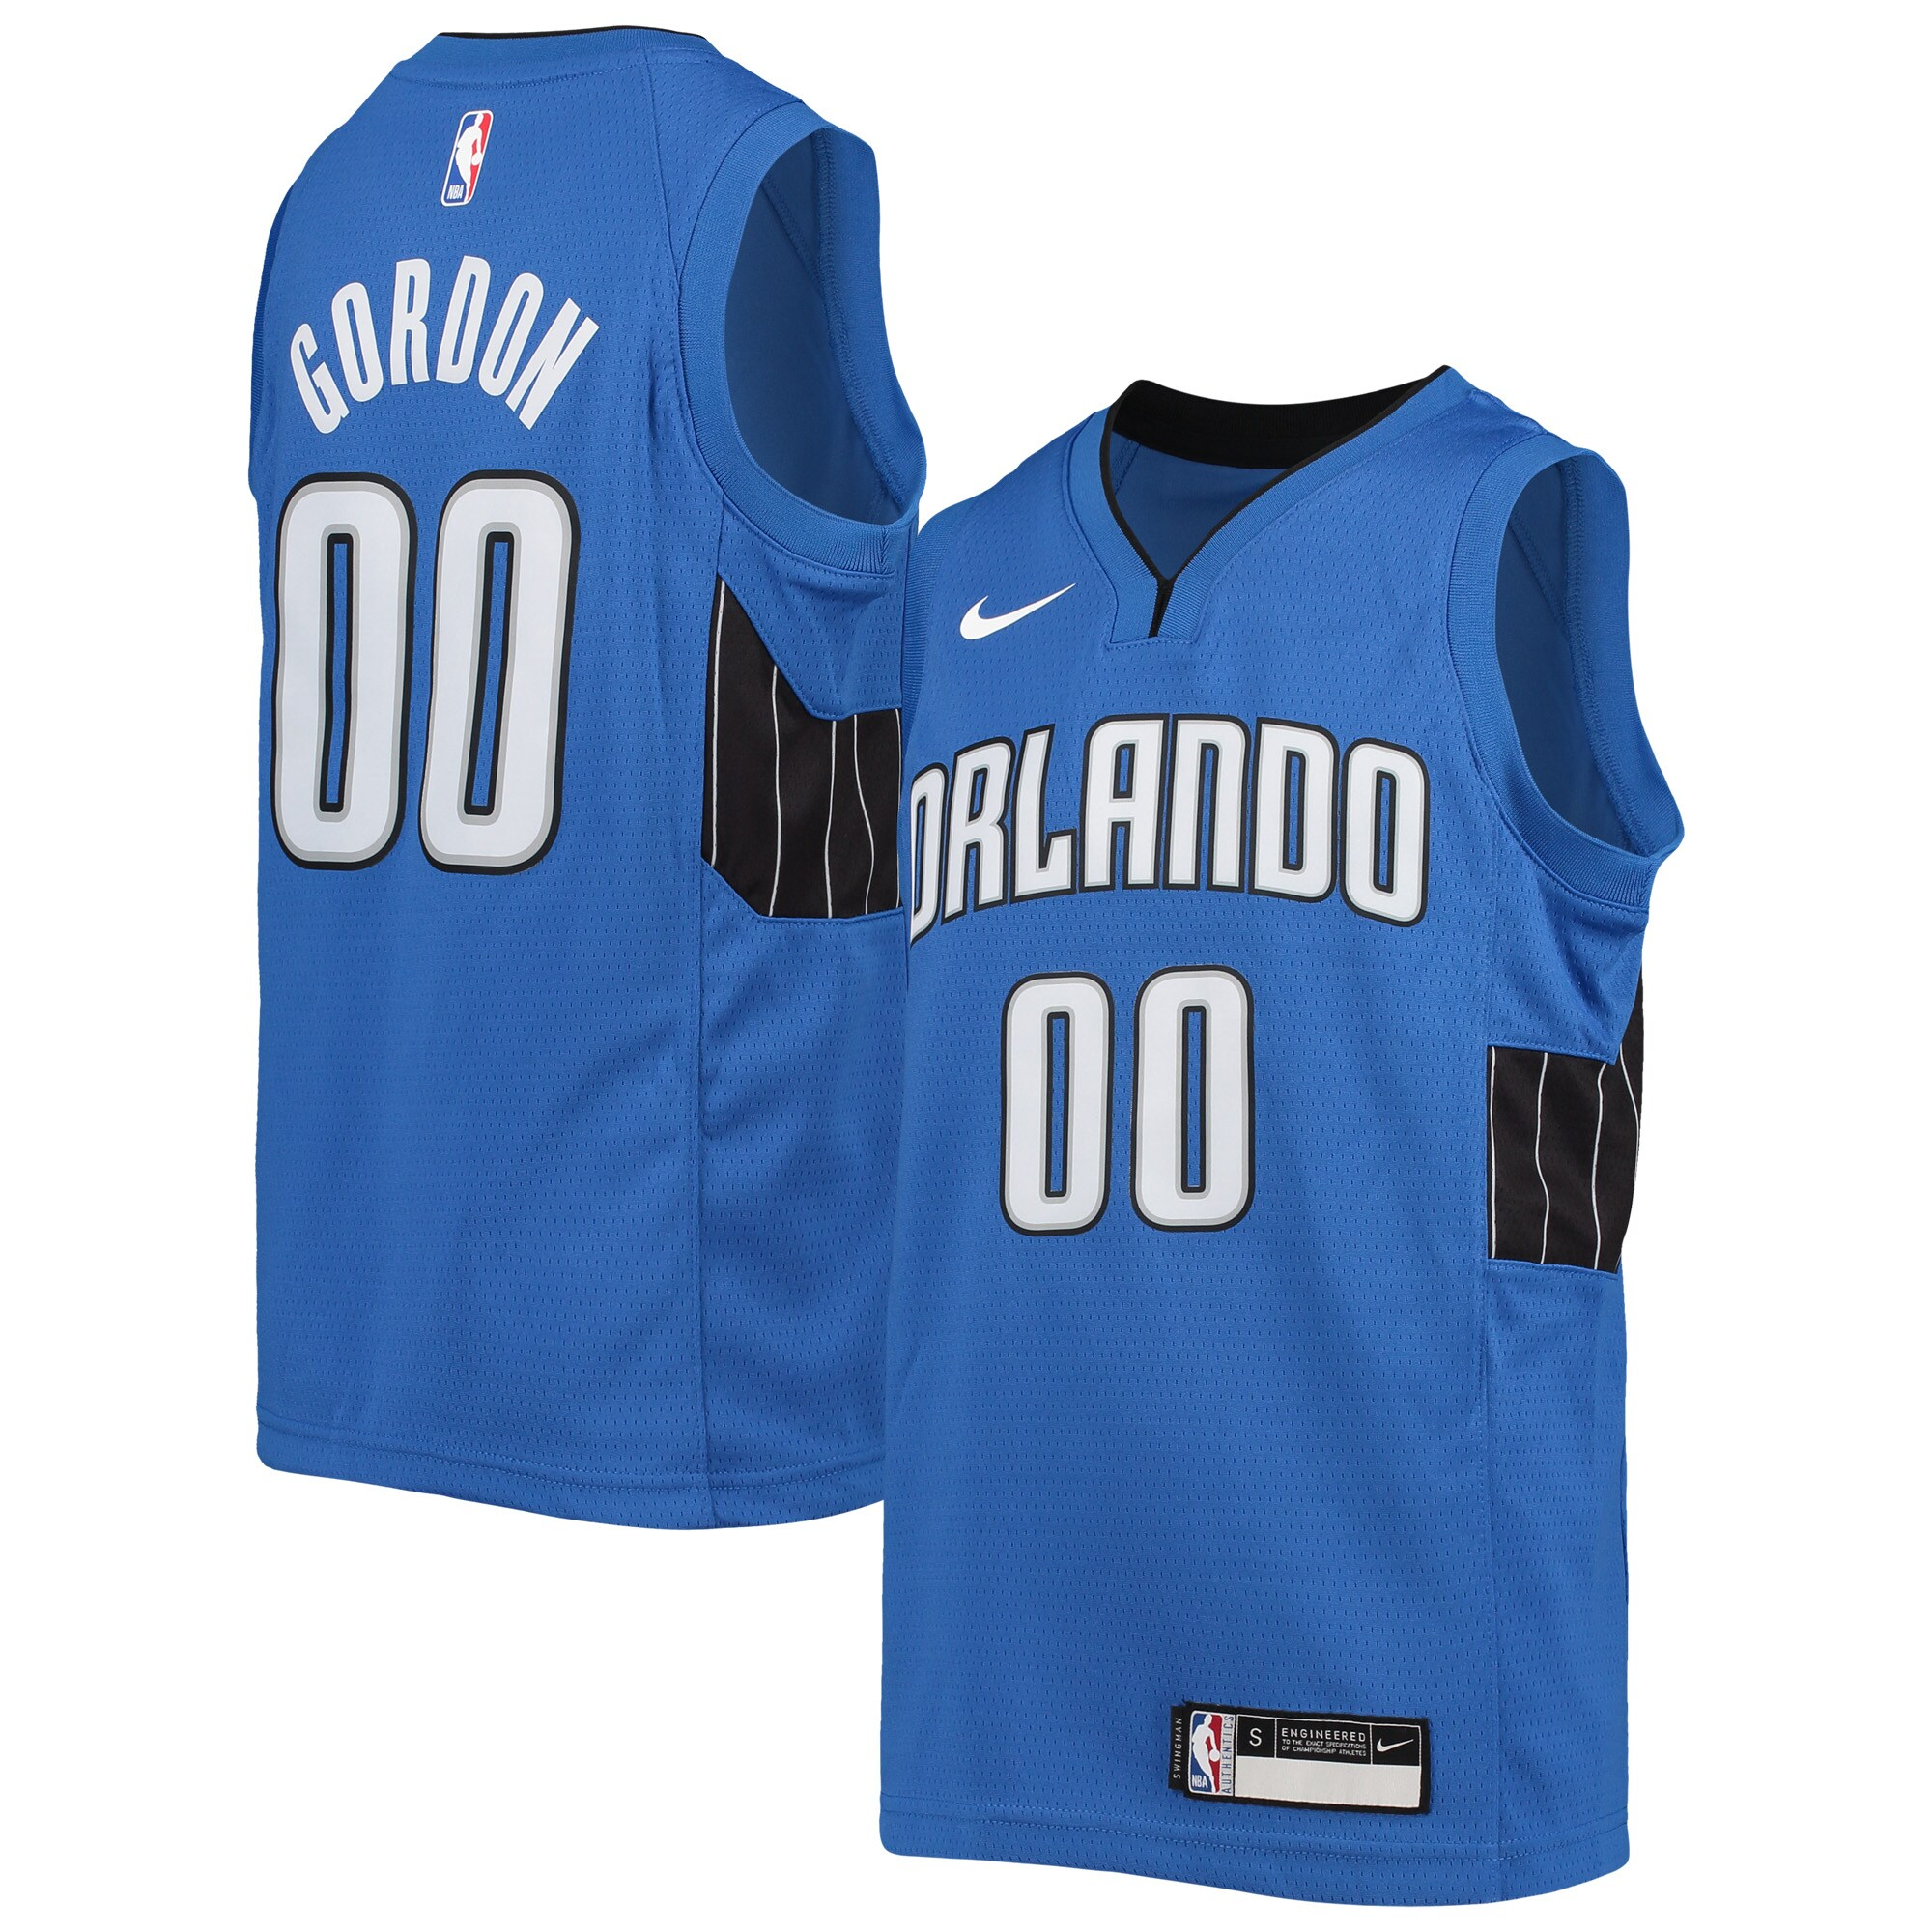 Aaron Gordon Orlando Magic Nike Youth Swingman Player Jersey - Statement Edition - Blue